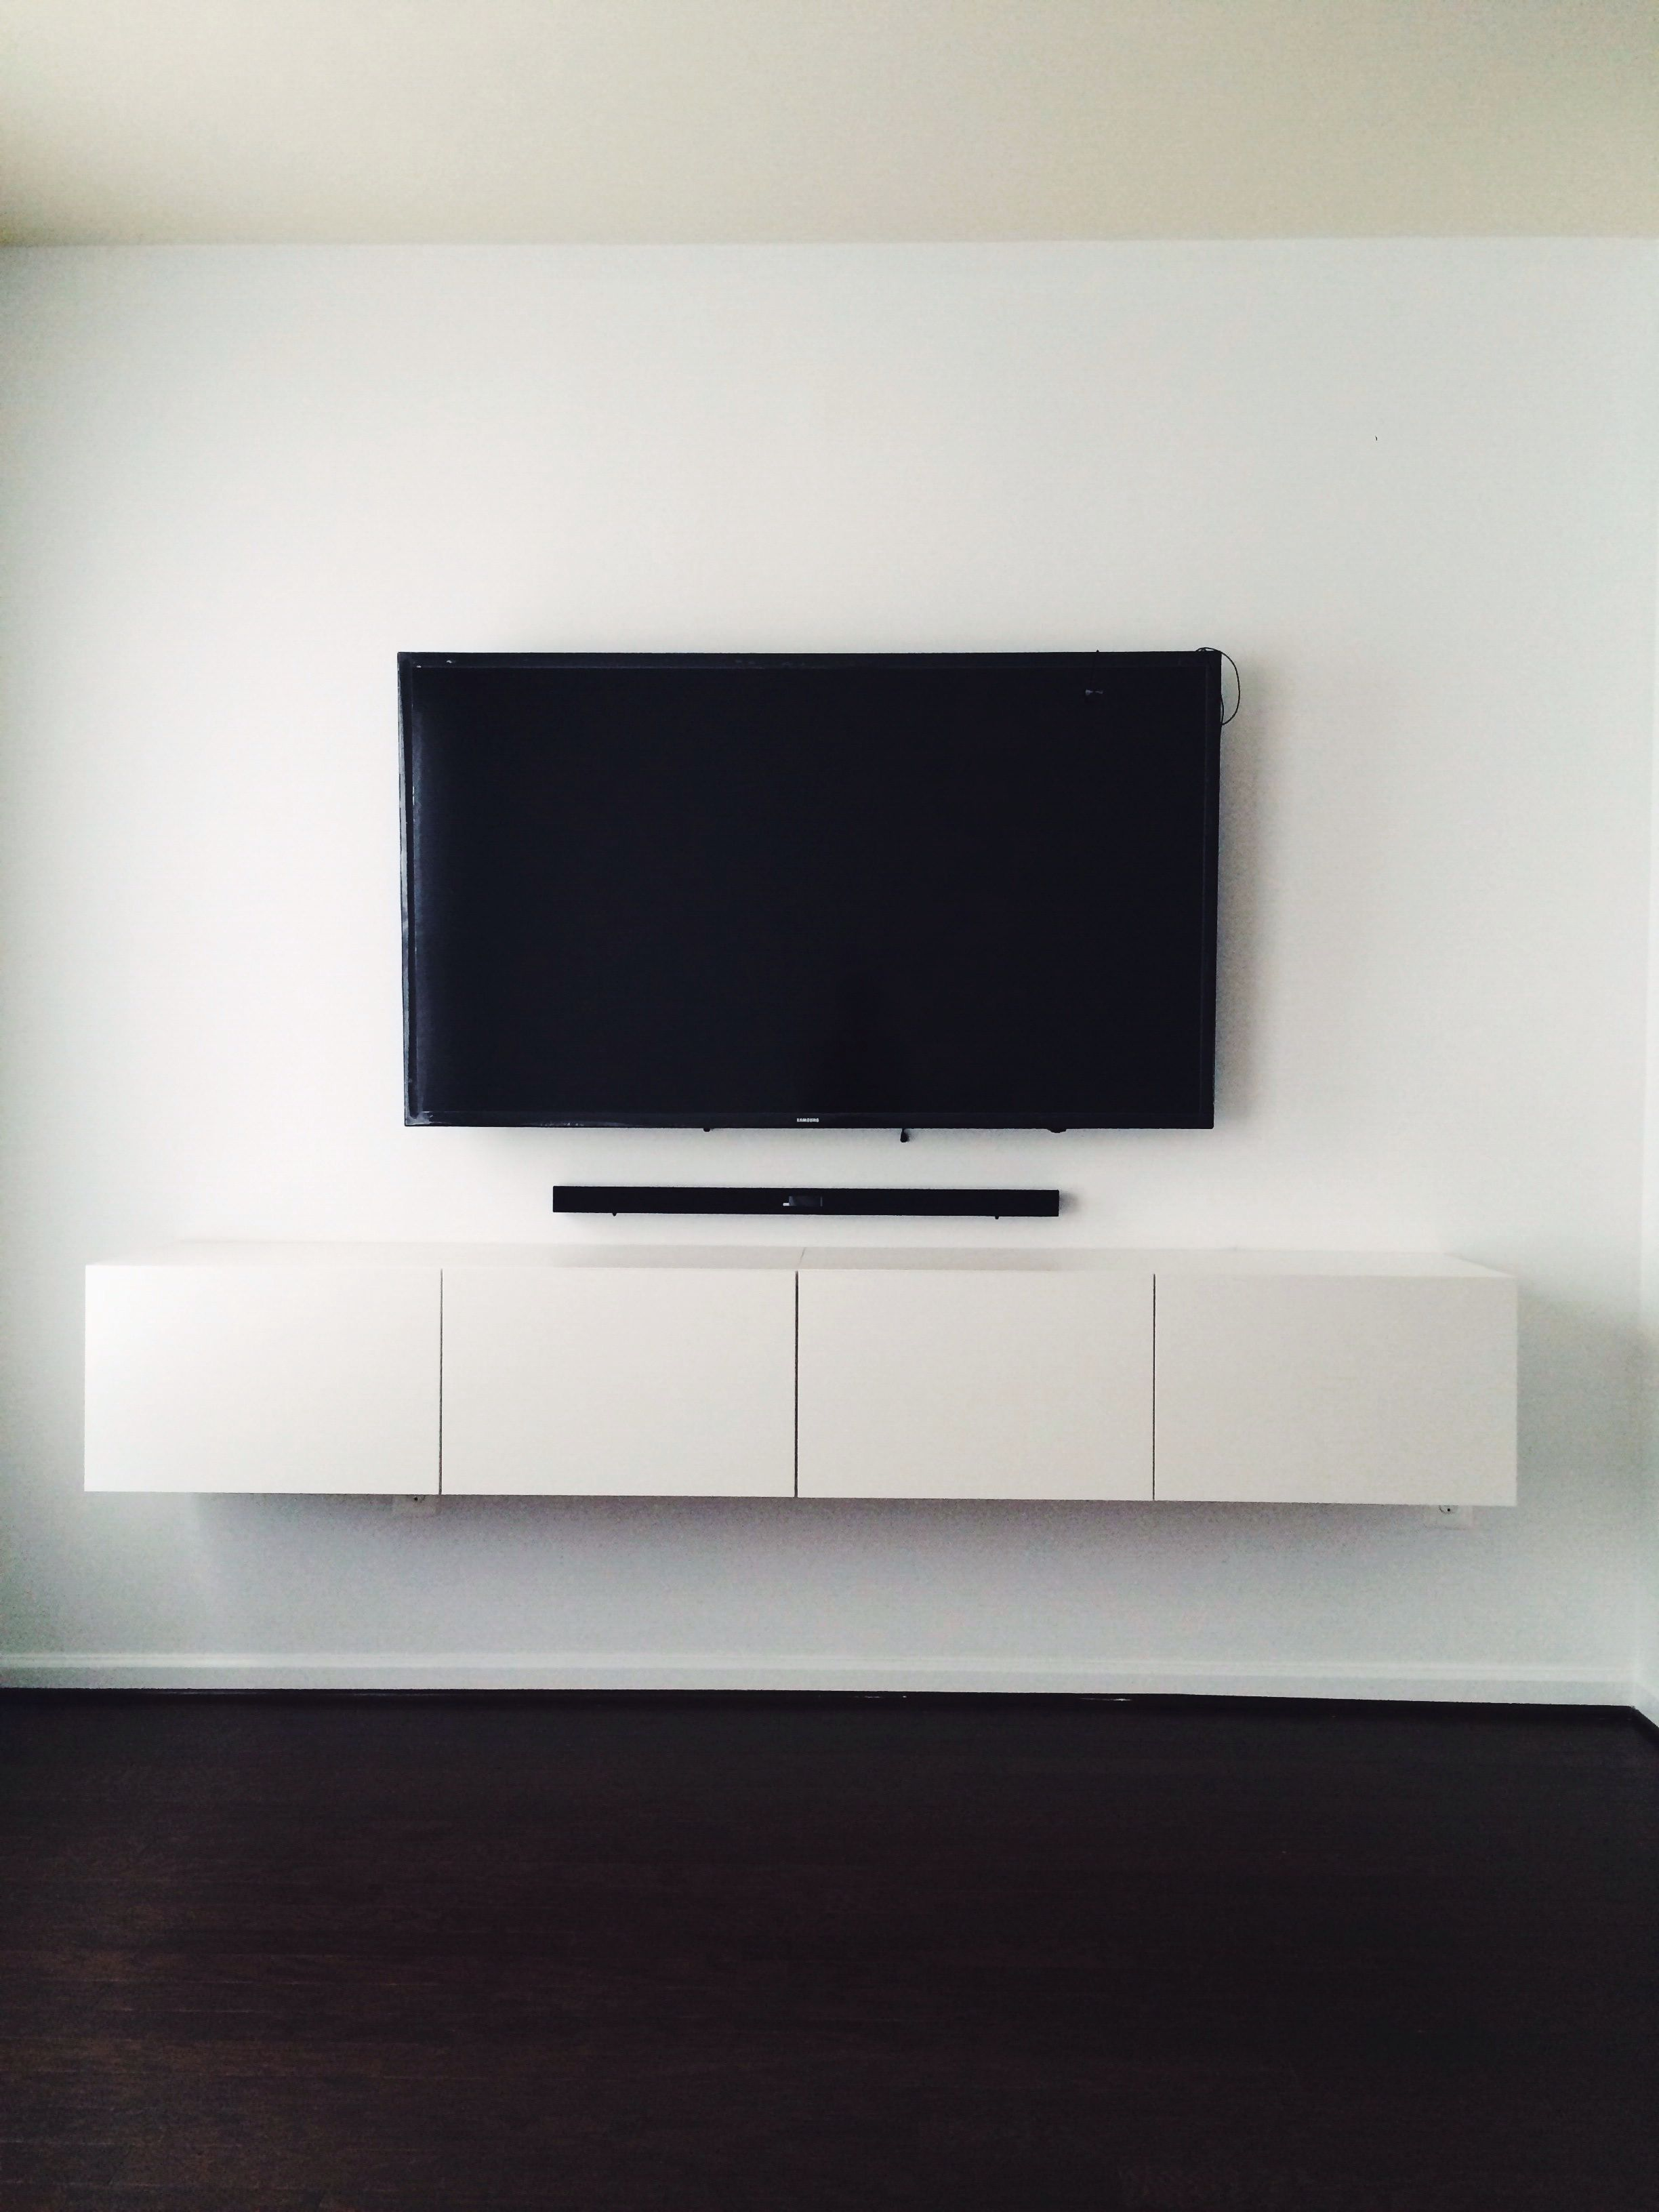 ikea best media console mounted tv with hidden wires now that 39 s clean modern living. Black Bedroom Furniture Sets. Home Design Ideas